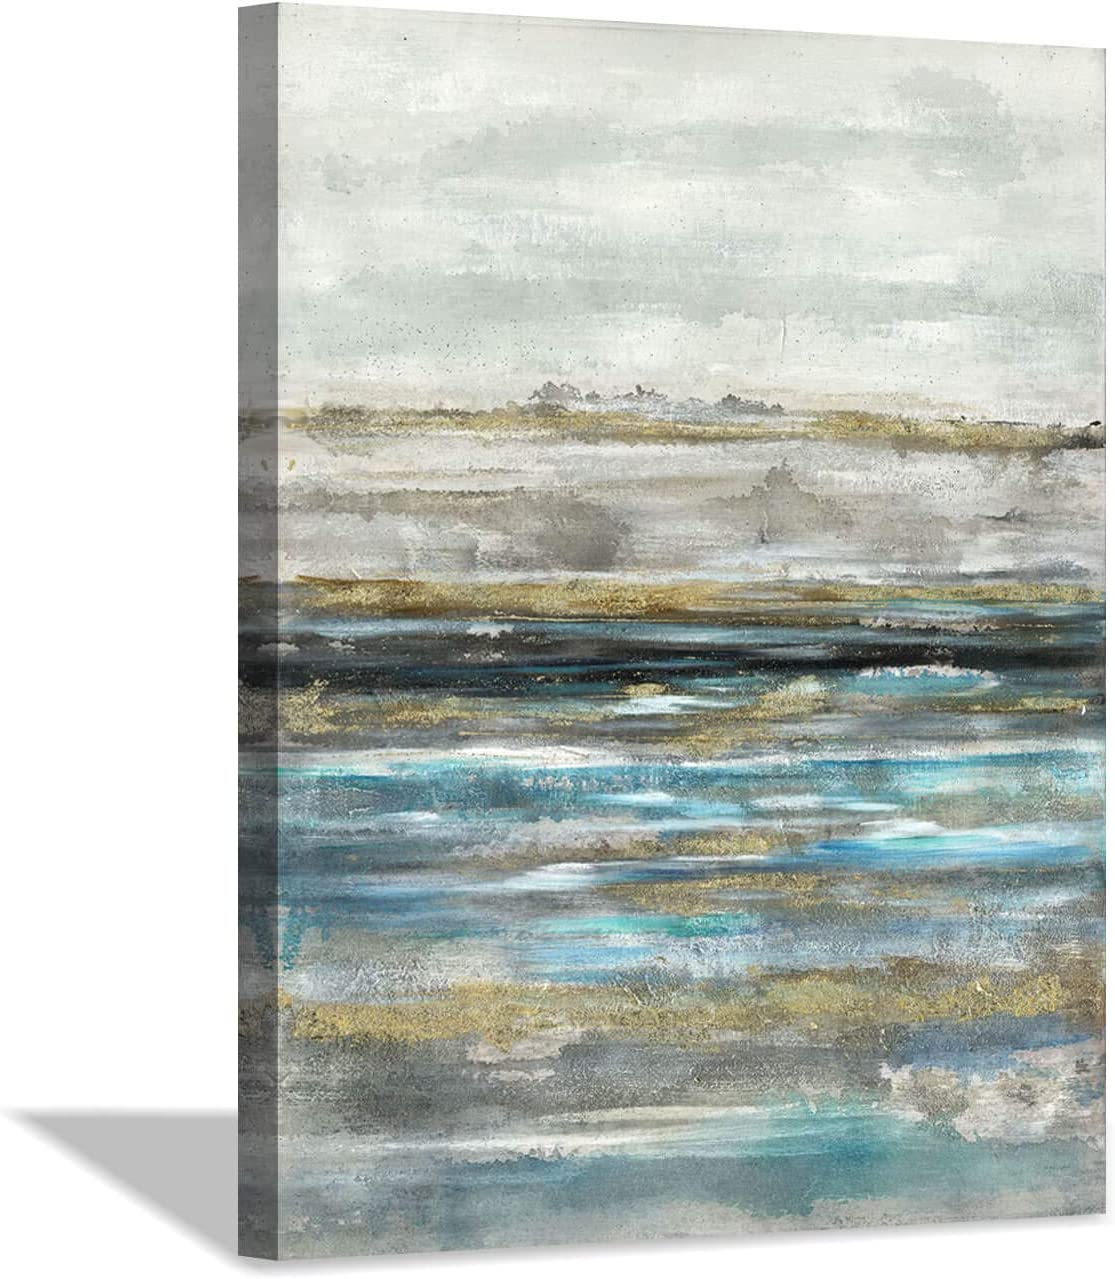 Colorful Abstract Canvas Wall Art: Modern Texture Oil Painting Artwork for Living Rooms (18x24x1 Panel)